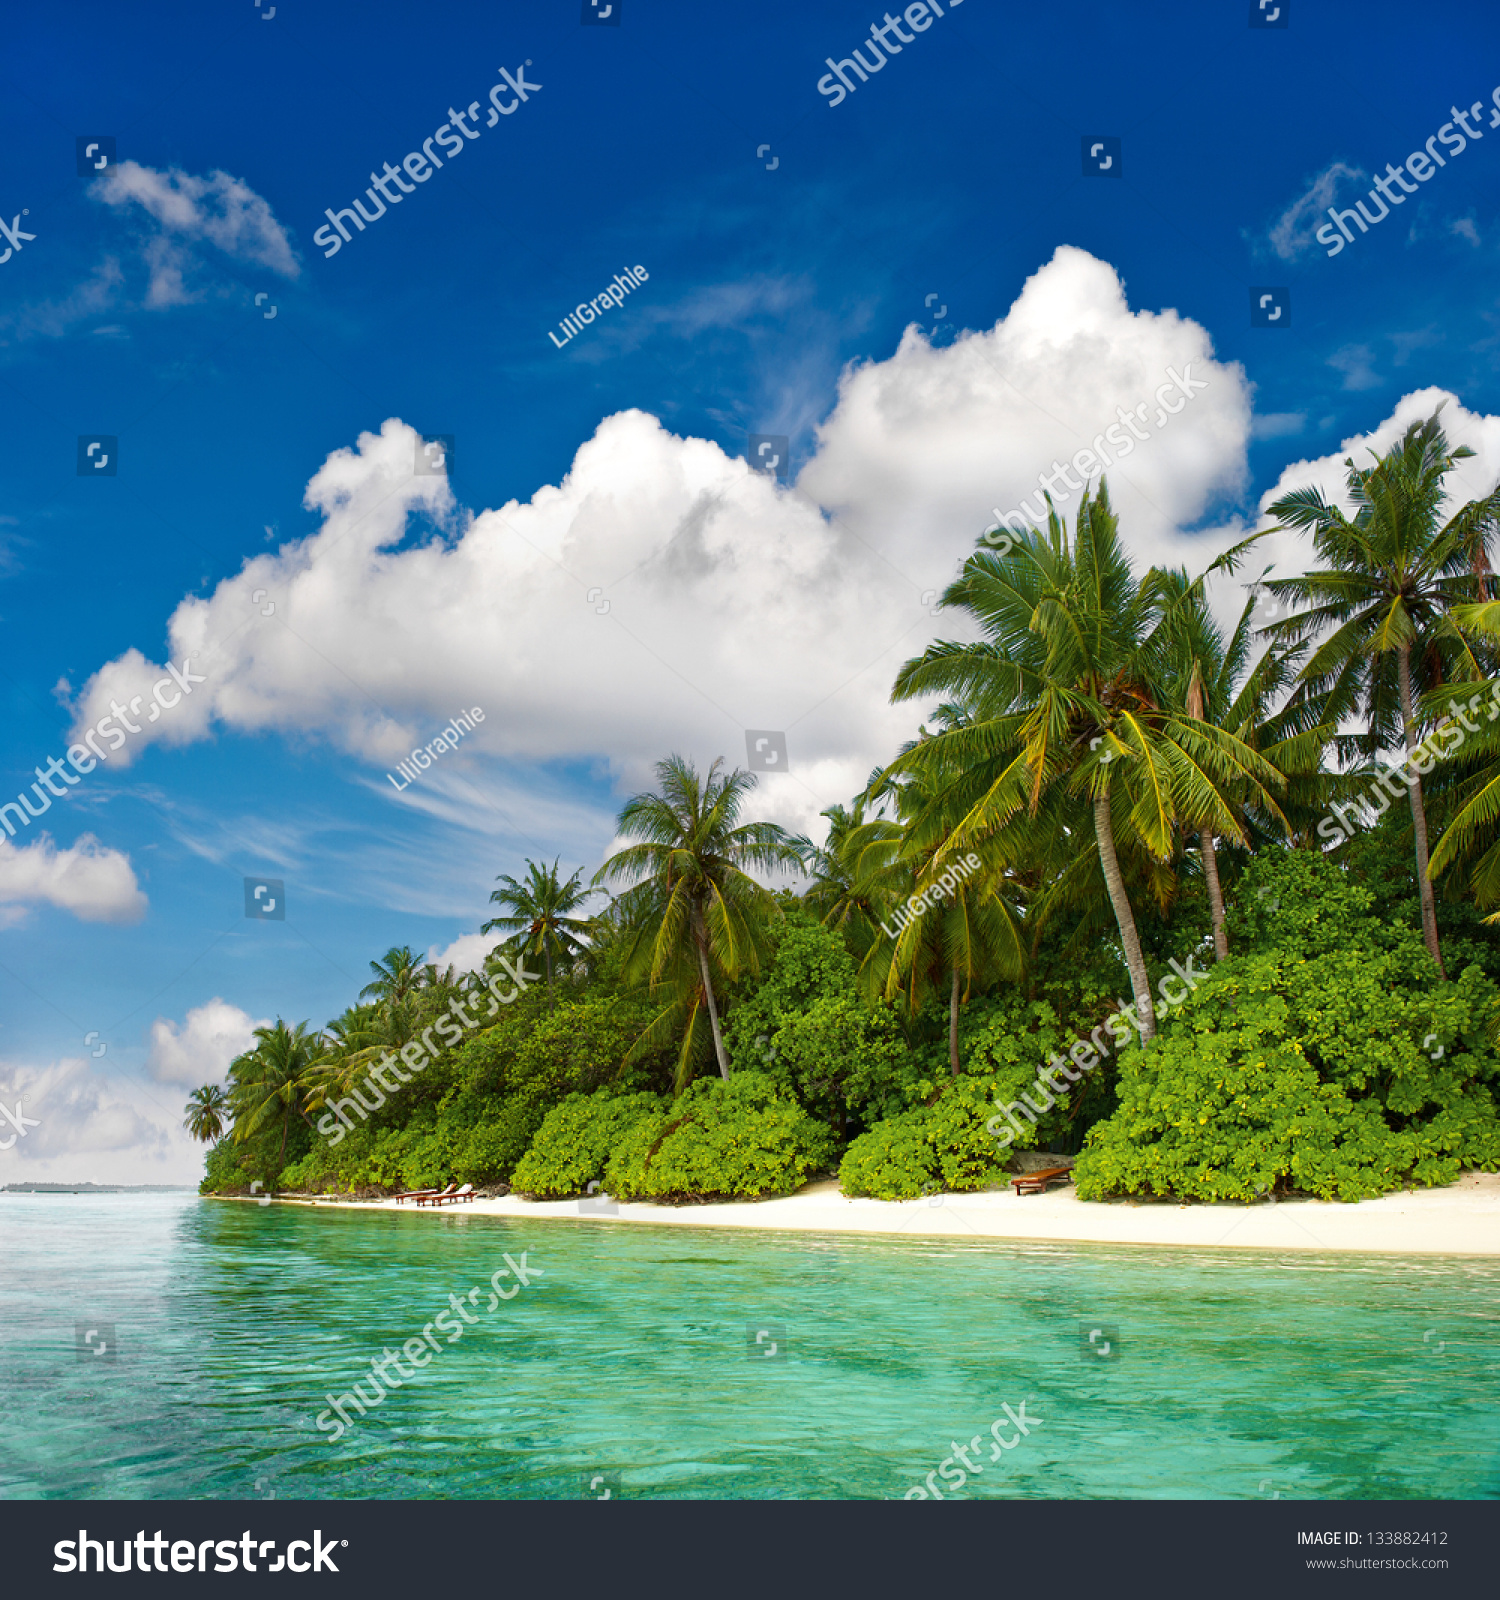 Palm Tree Island: Landscape Tropical Island Beach Palm Trees Stock Photo